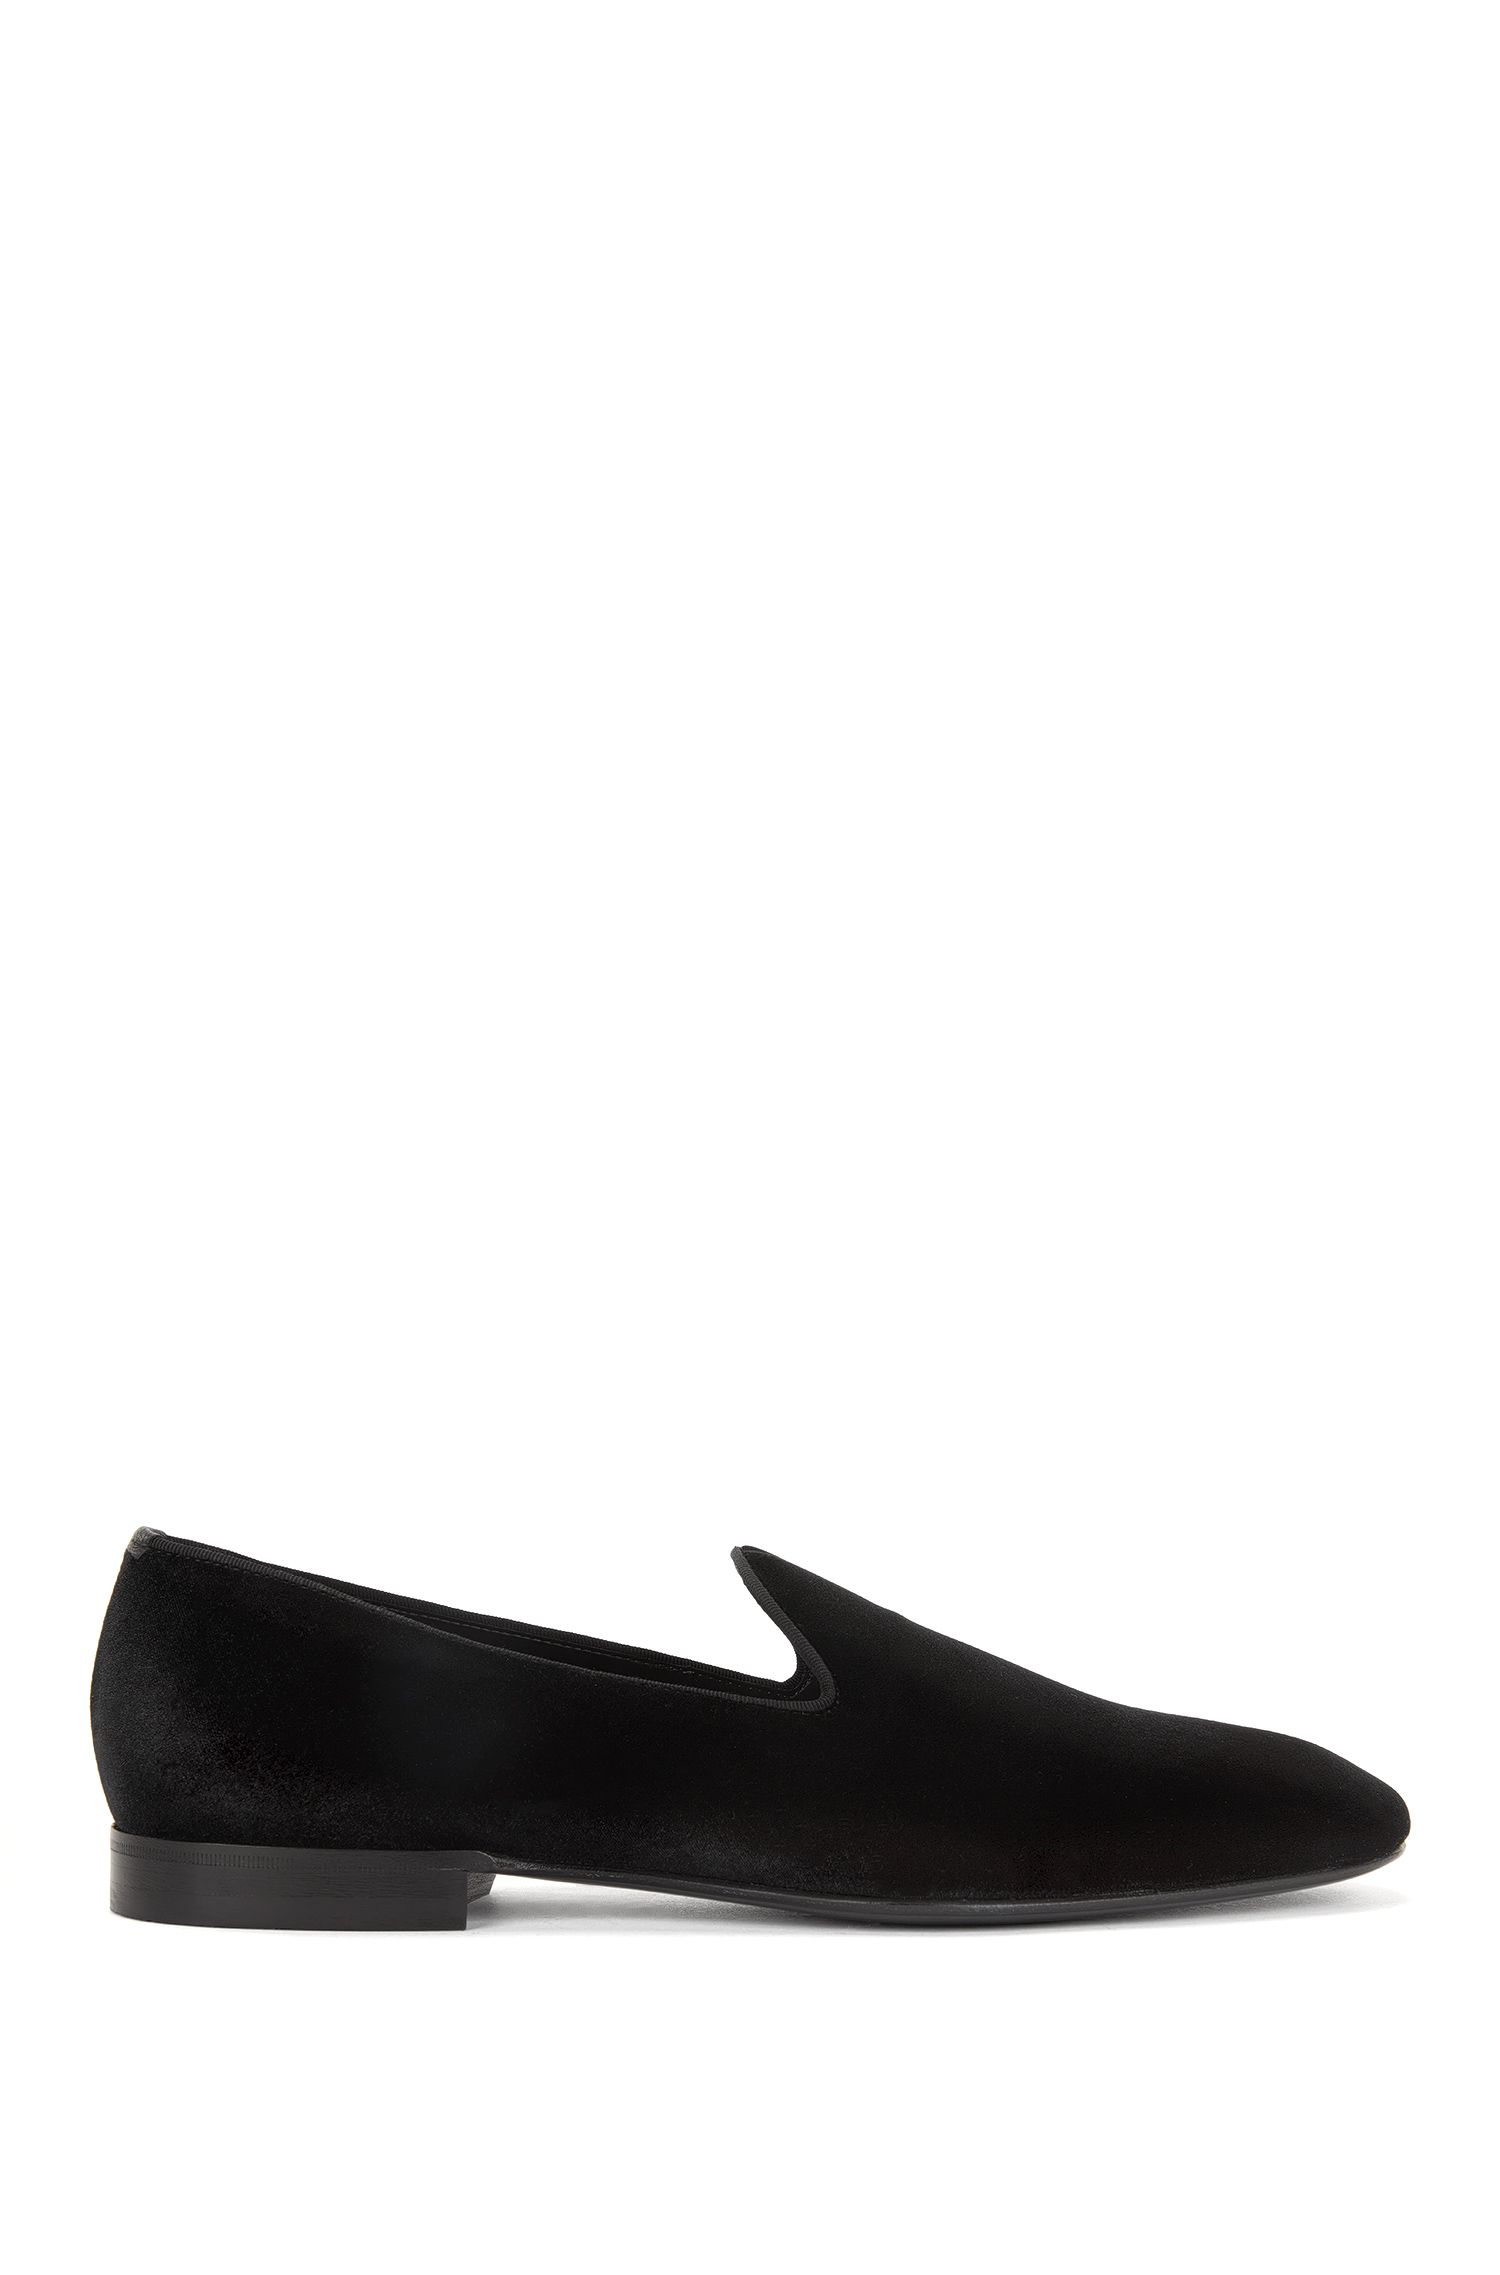 Velvet Opera Shoe | Glam , Black